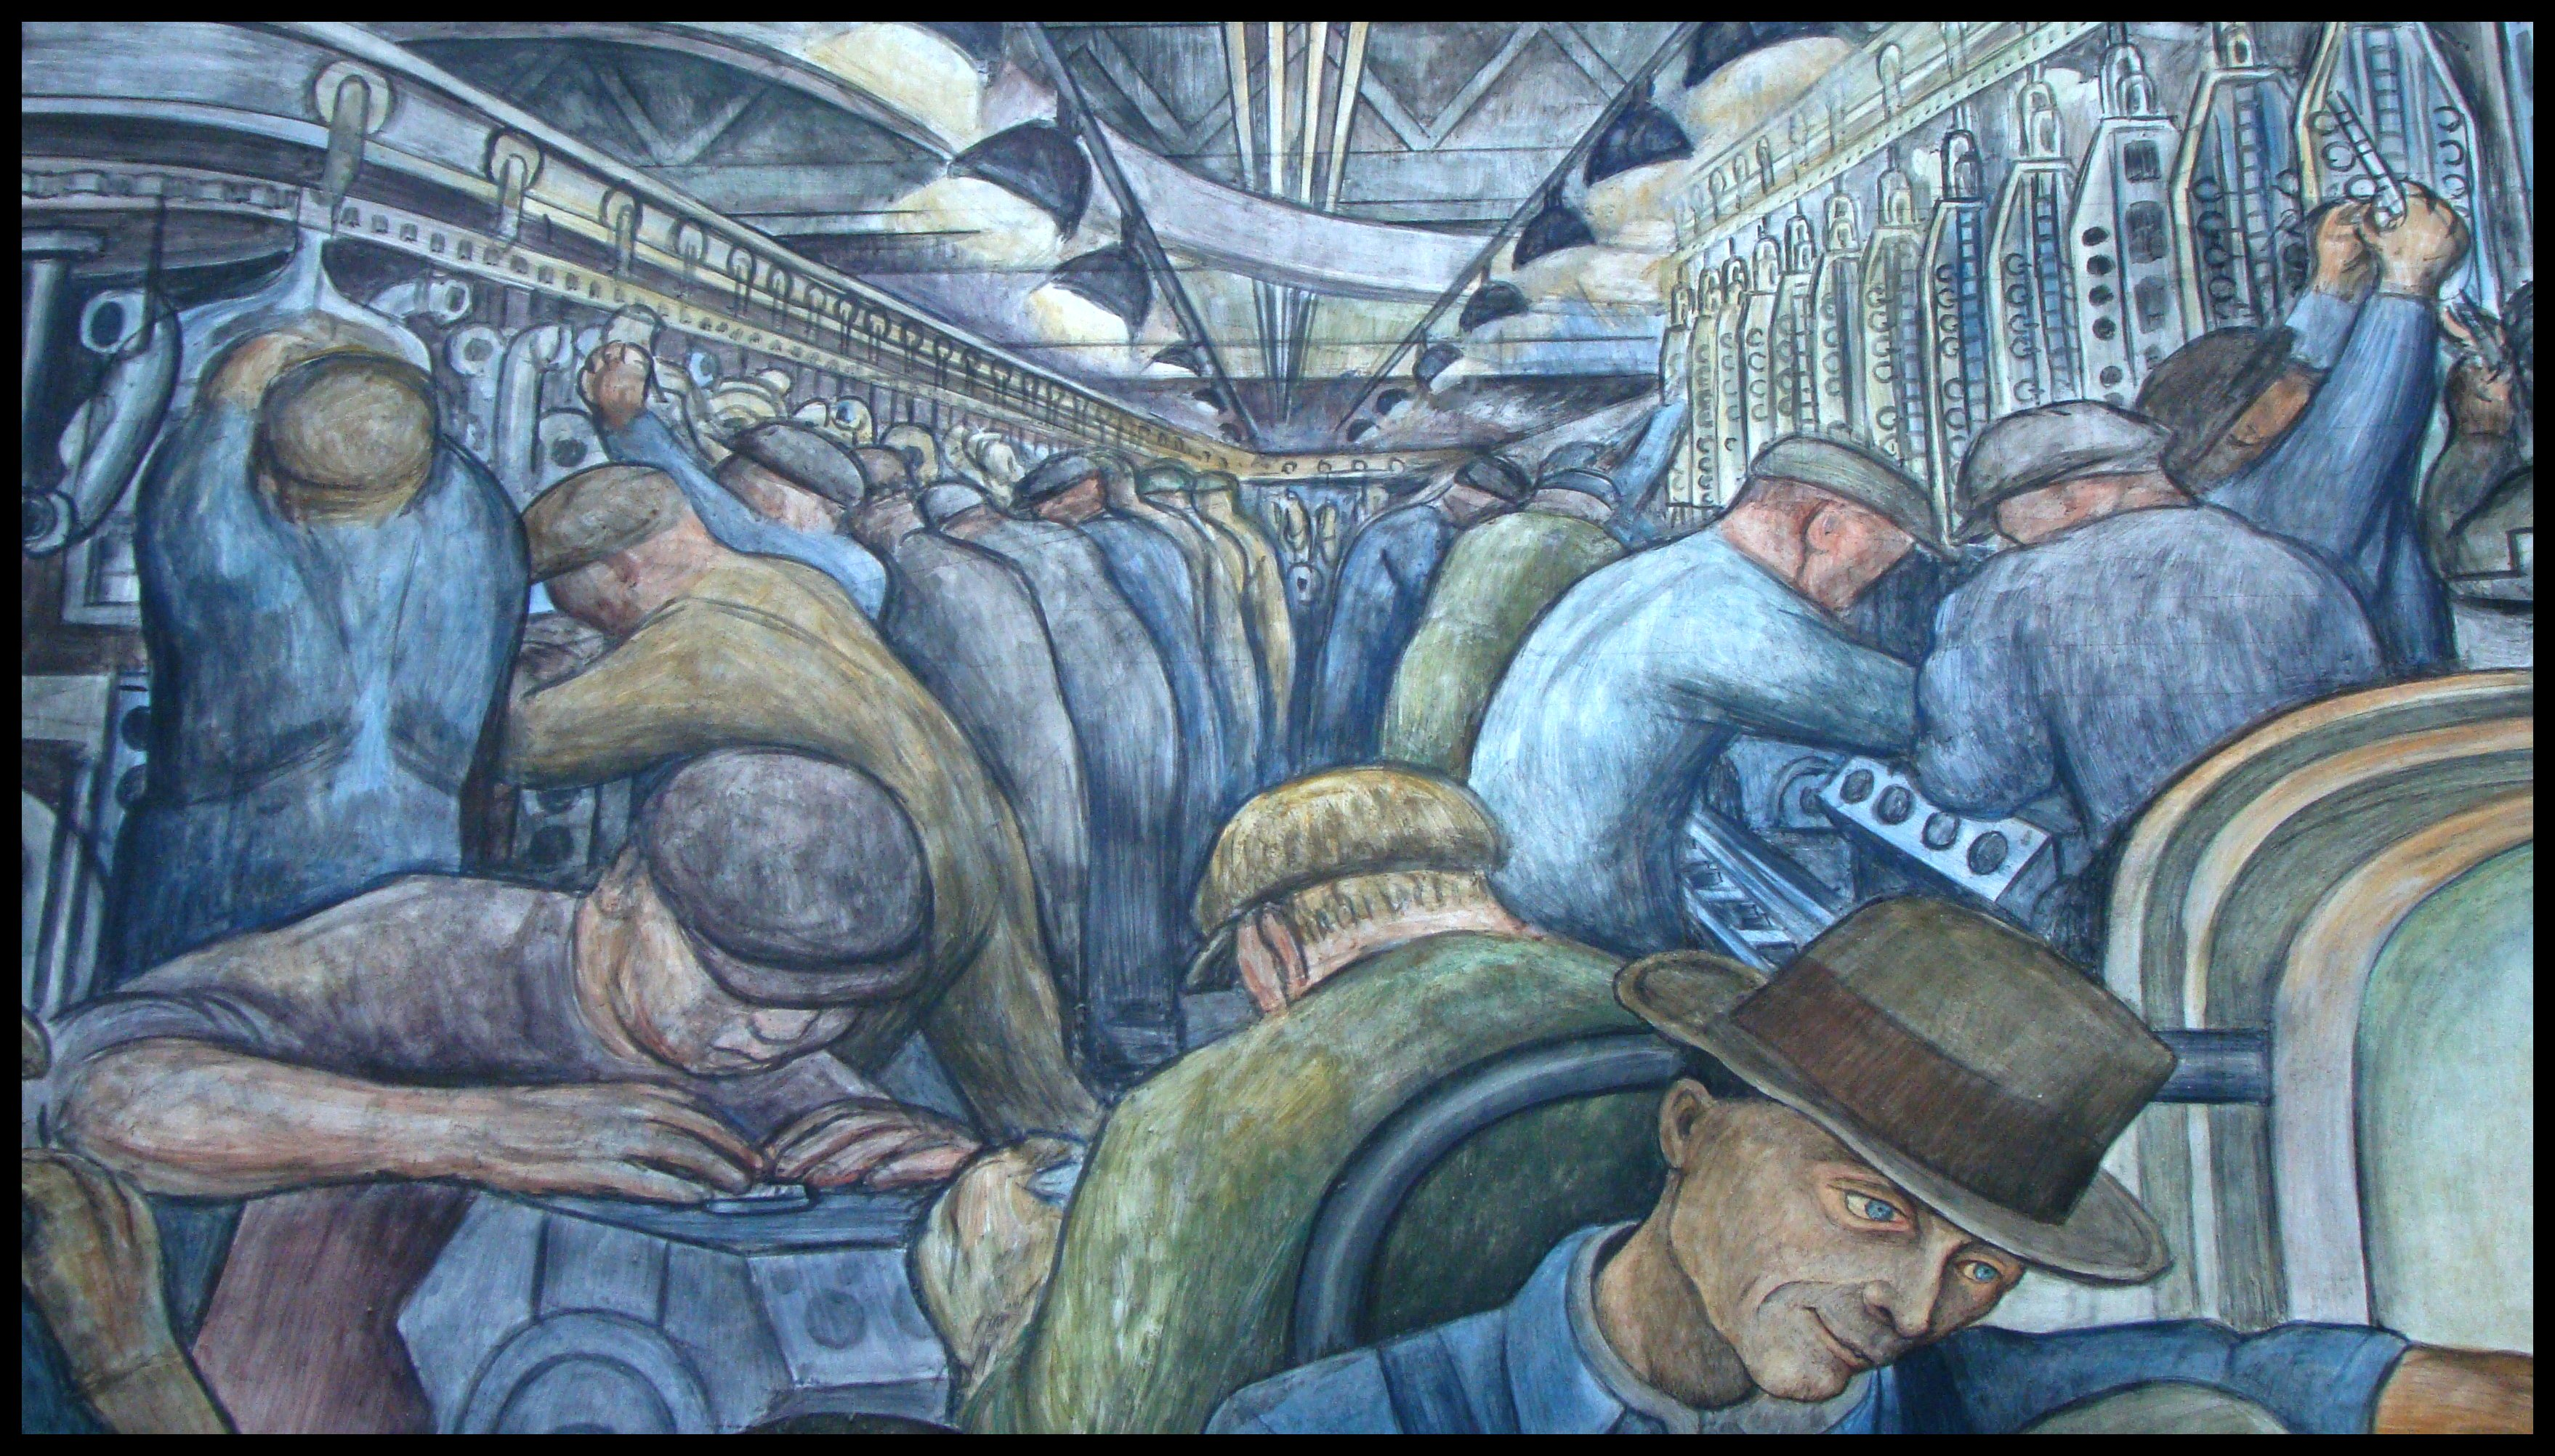 Detroit institute of art diego rivera mural flickr for Diego rivera detroit mural